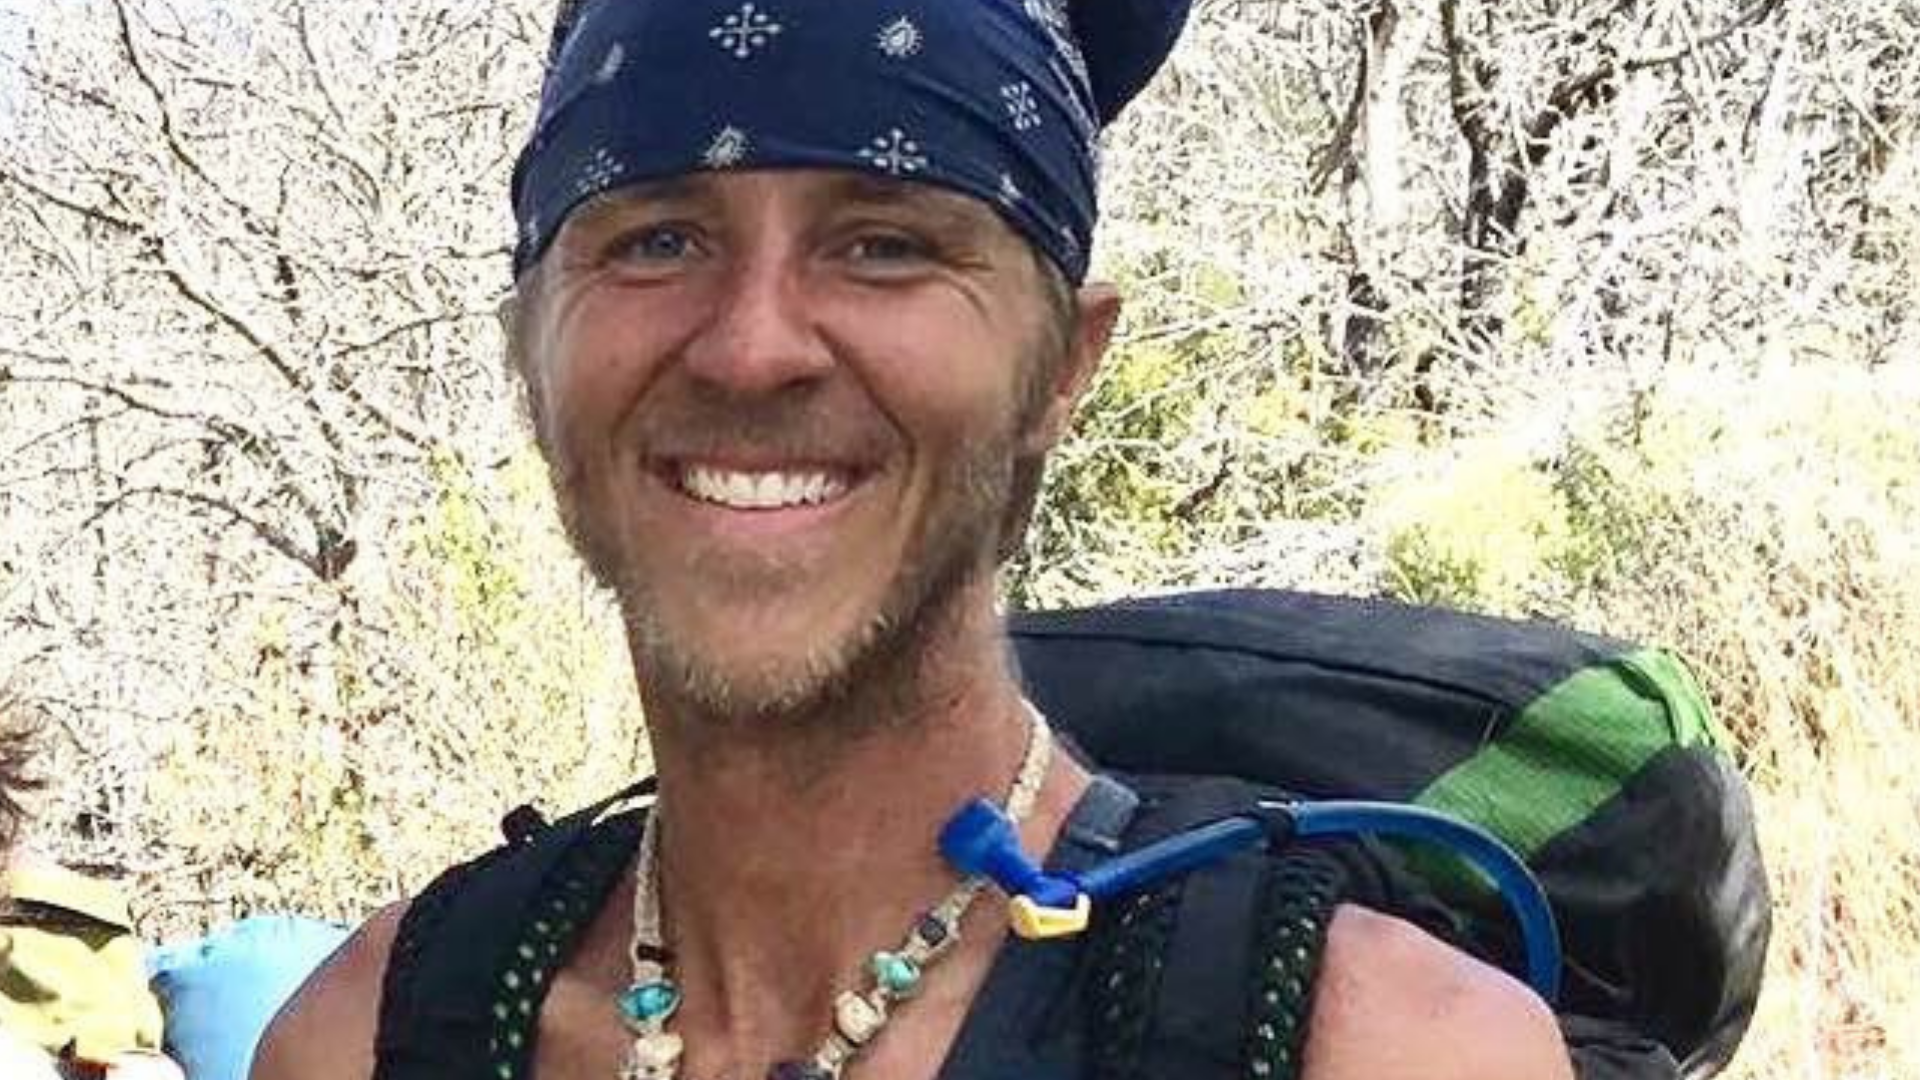 New-foundation-created-to-help-families-of-lost-hikers-following-2016-disappearance-of-Kris-Fowler